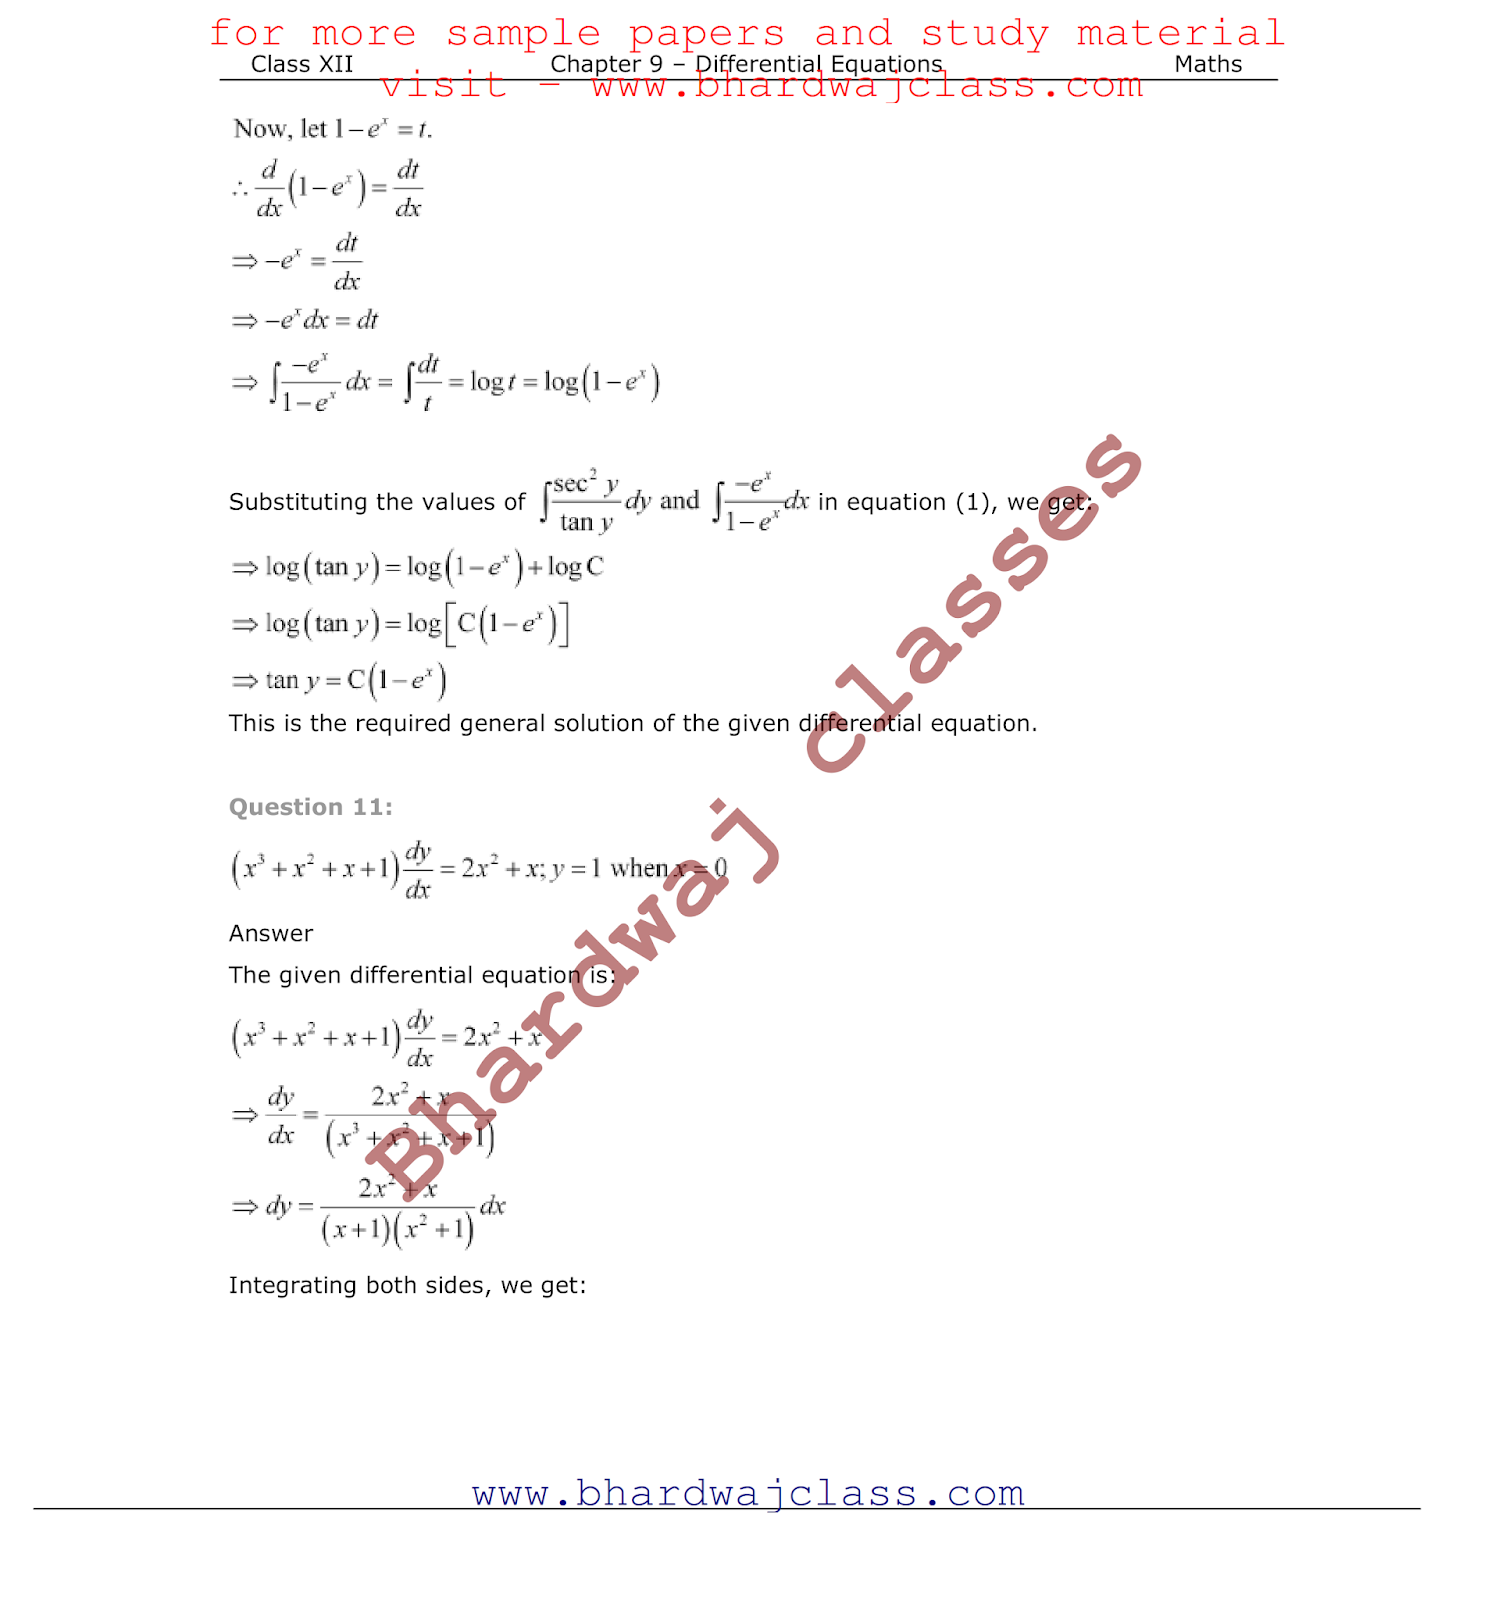 CBSE Class 12 Maths NCERT Solutions Chapter 9